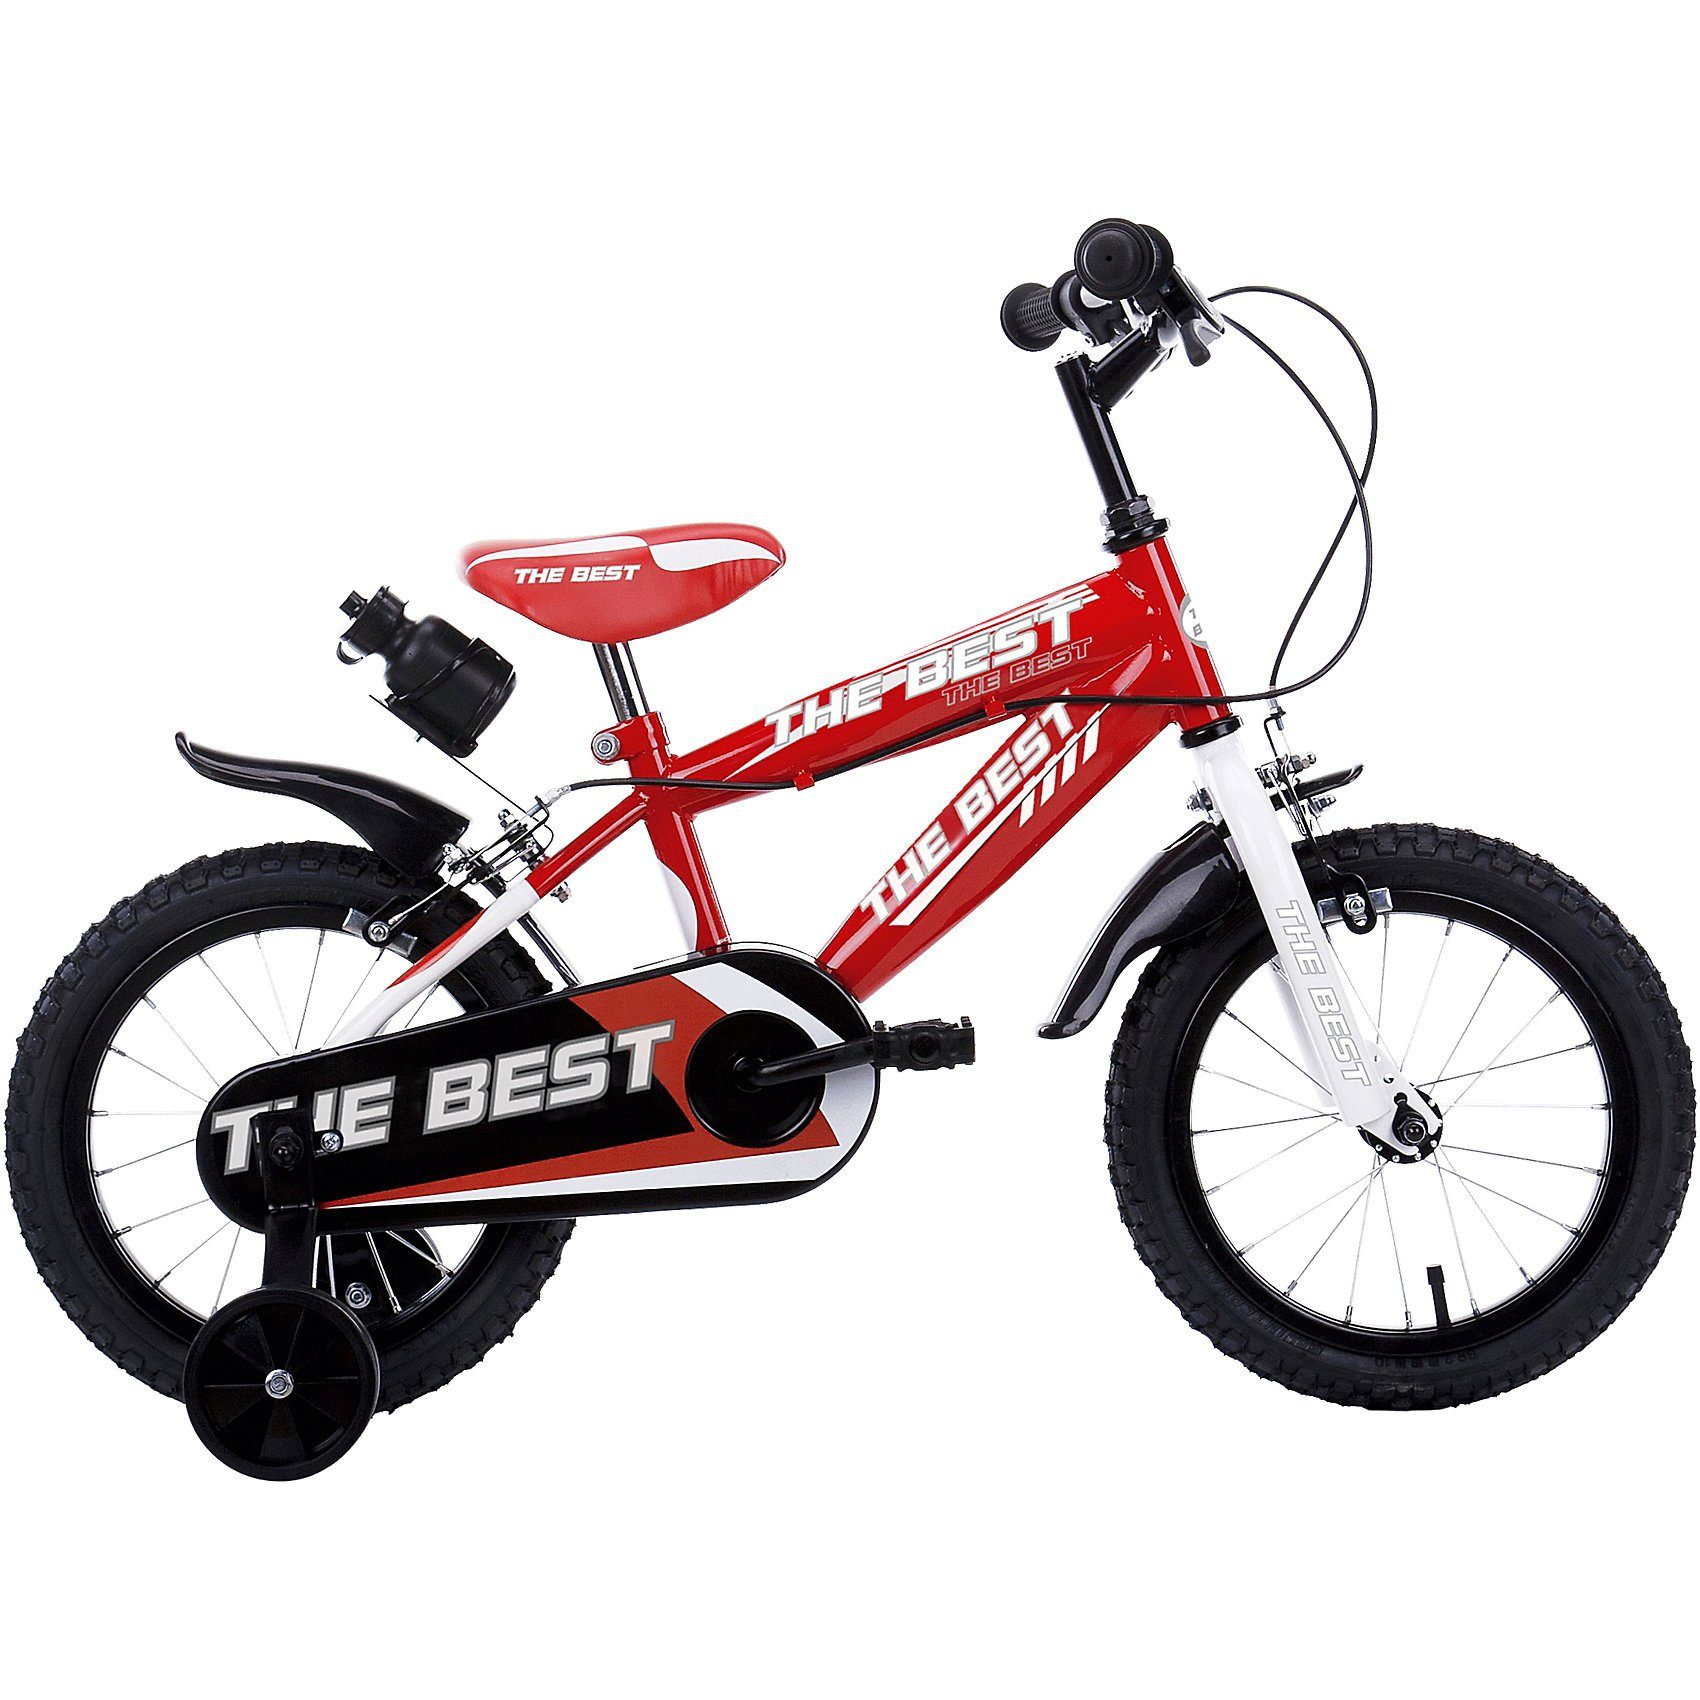 Schiano Kids Kinderfahrrad The Best, 12 Zoll